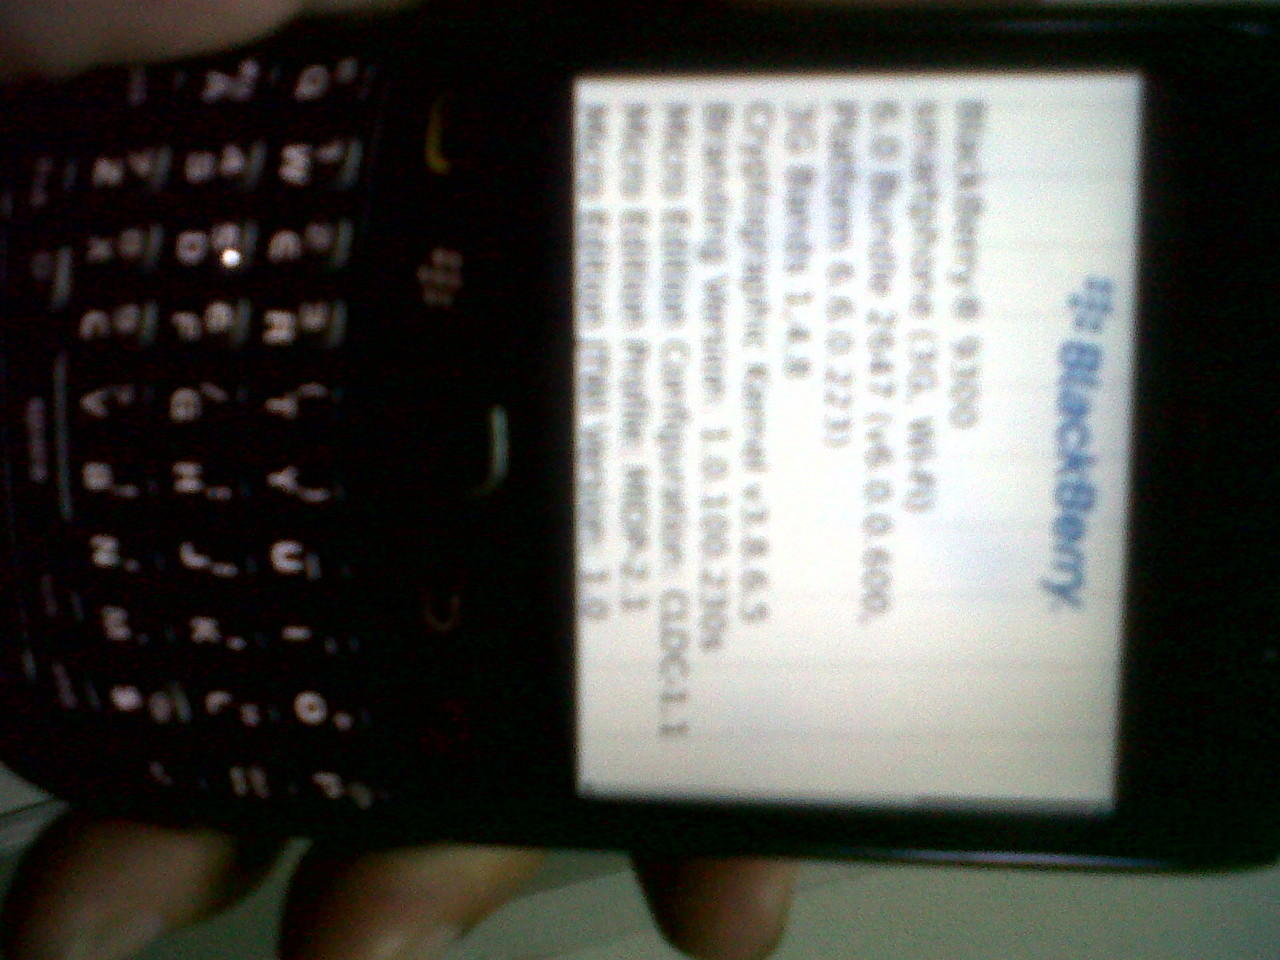 Blackberry Gemini 3g 9300 Keppler MURMER